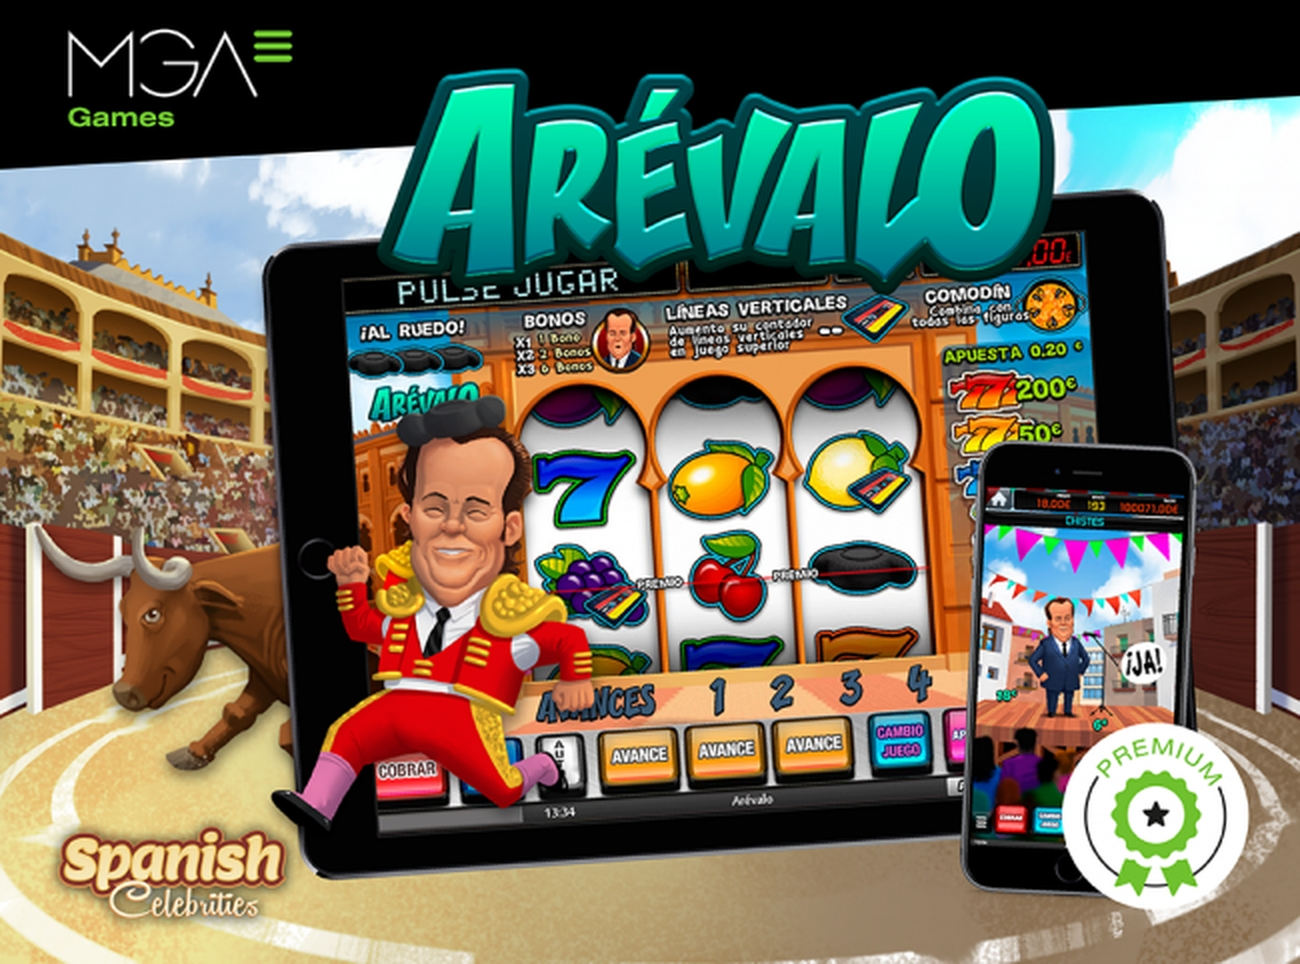 The Arevalo Online Slot Demo Game by MGA